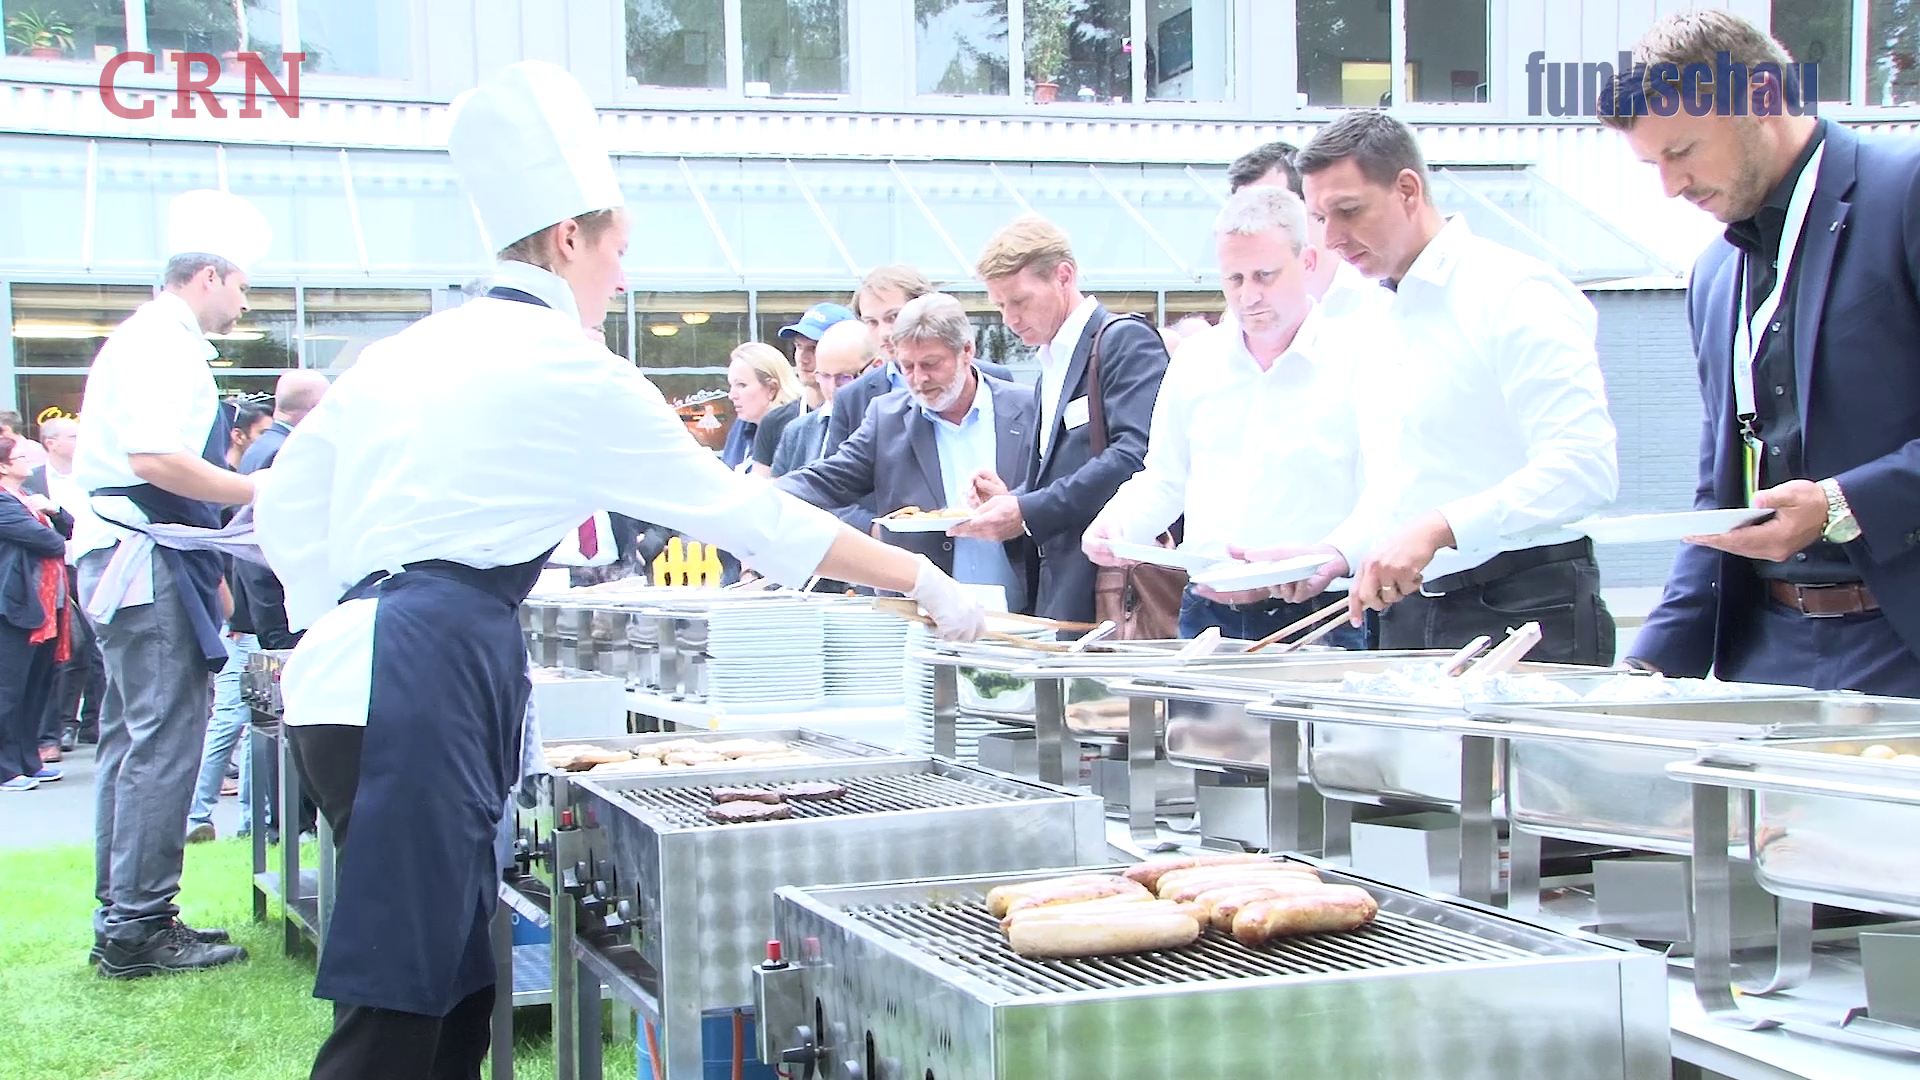 O'grillt is! Das 4. CEBIT VIP BBQ